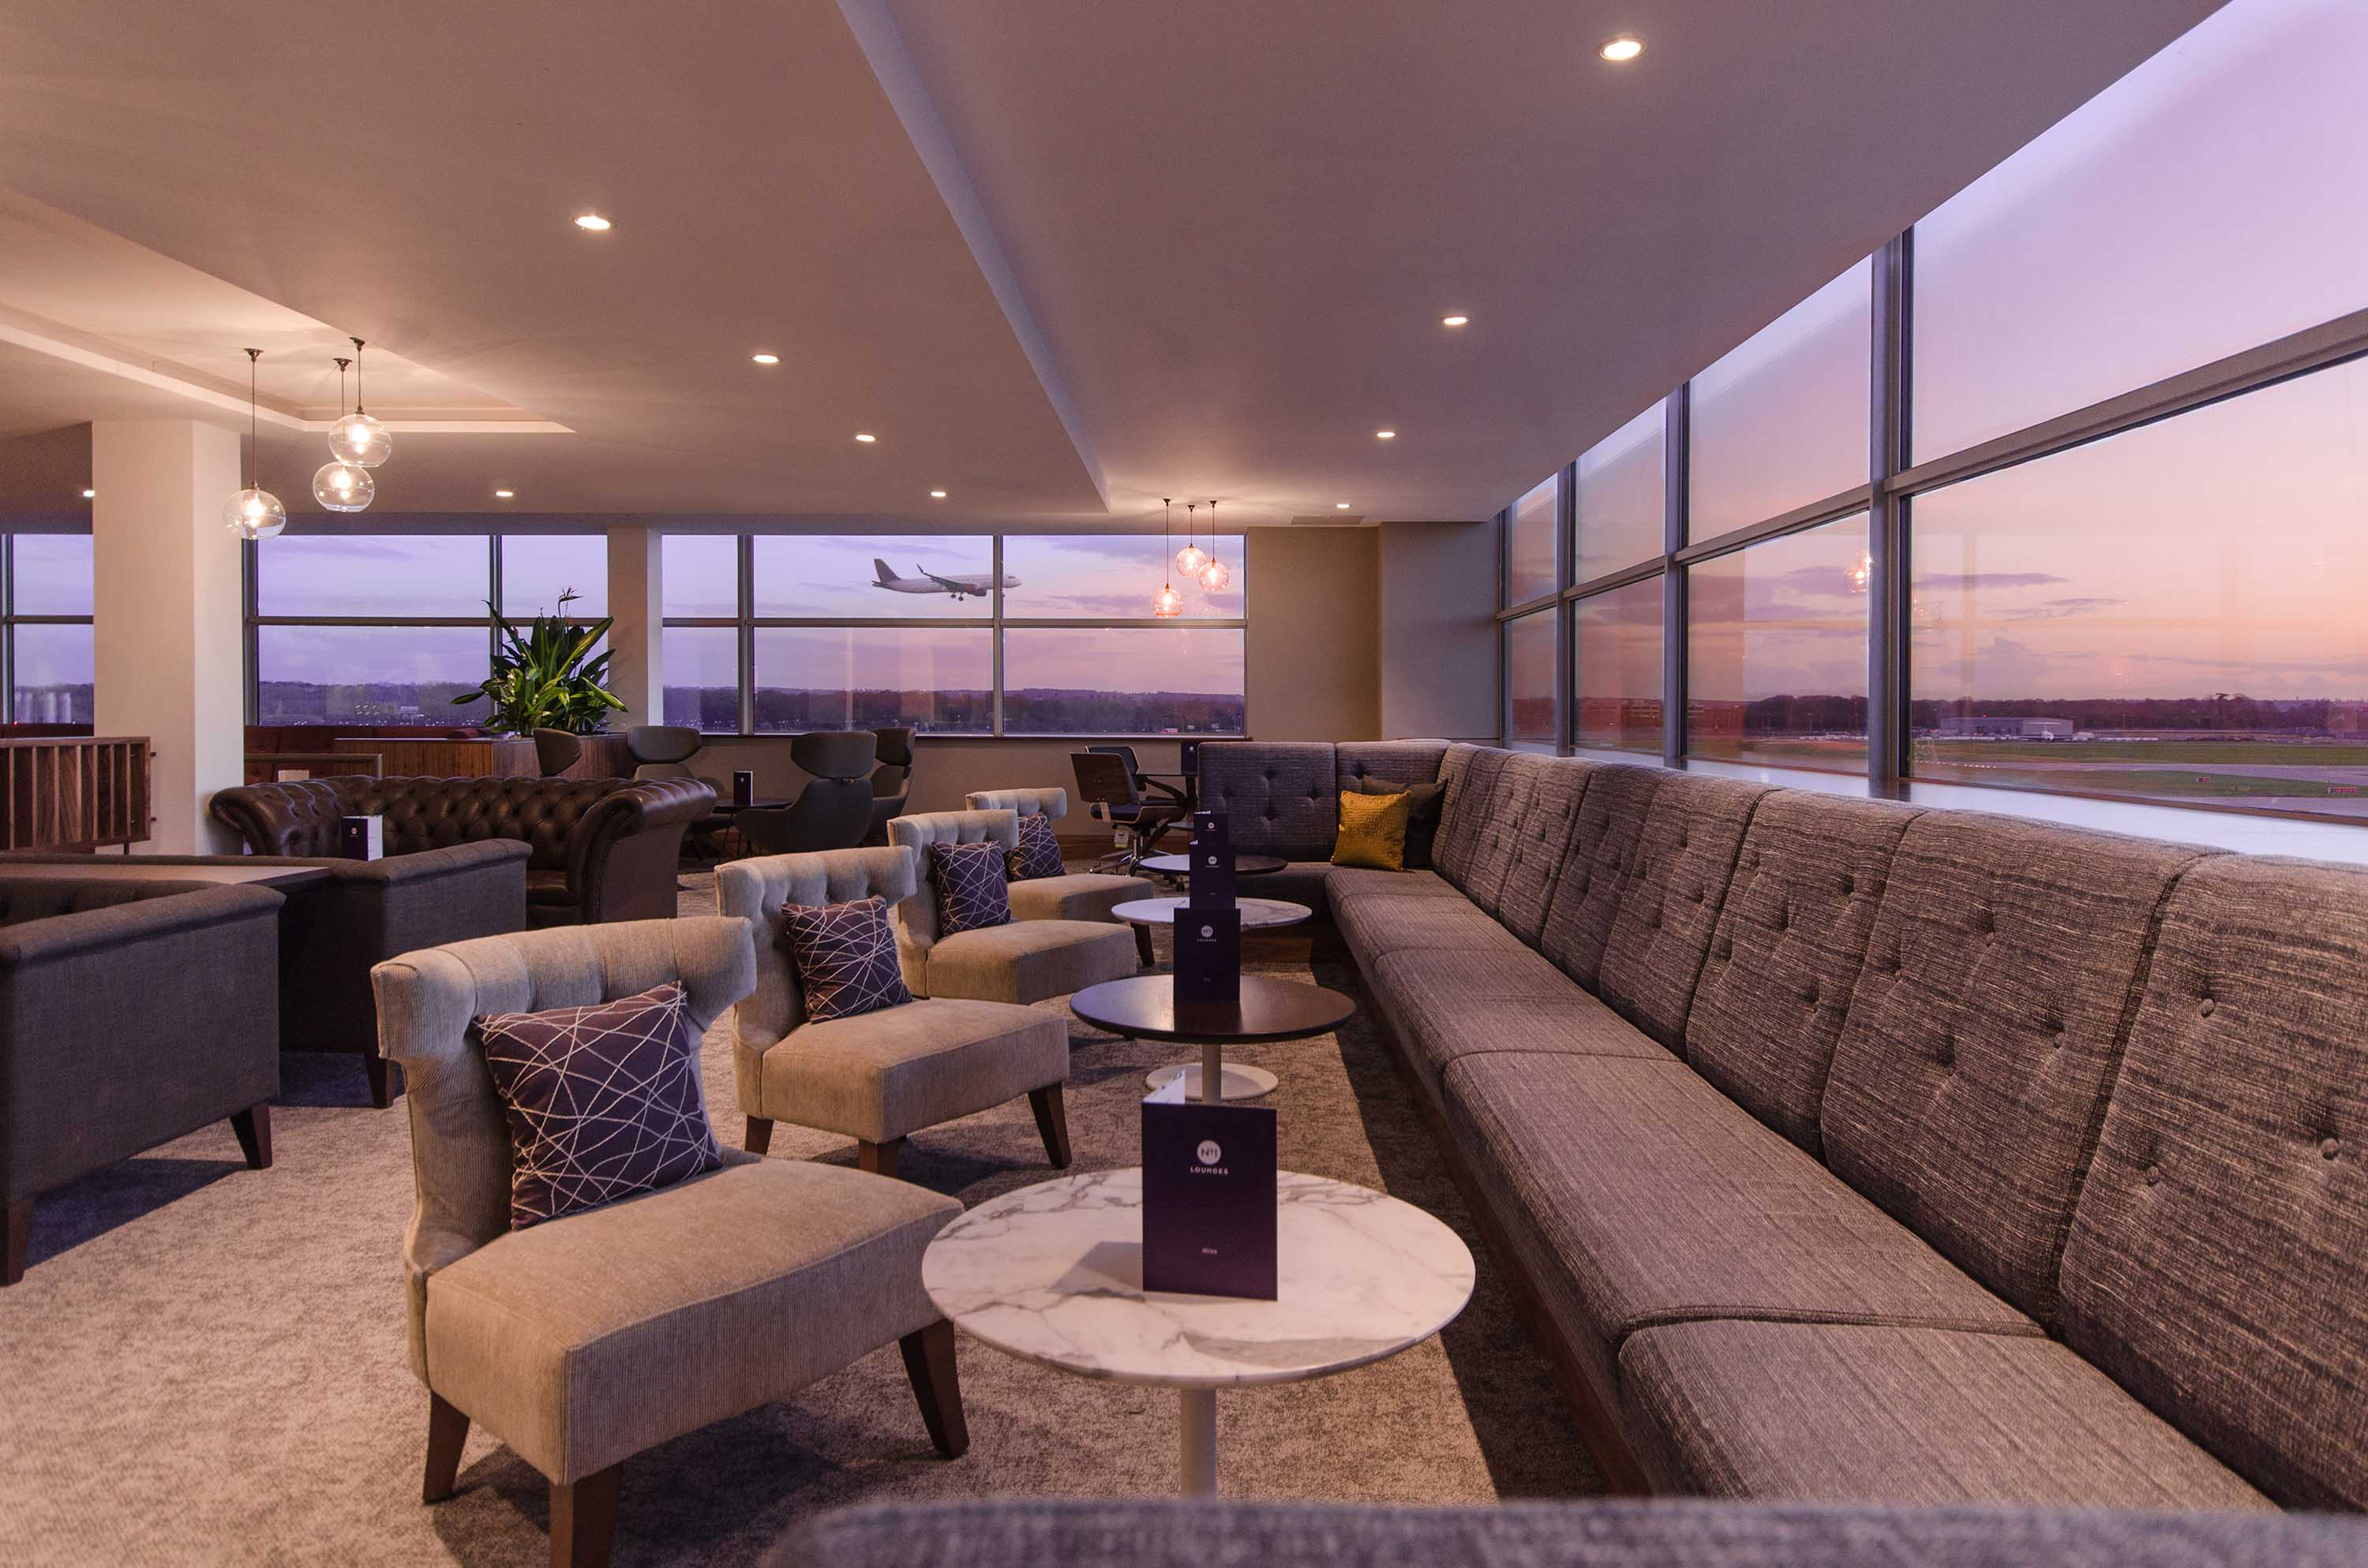 Brent Griffith - Page 1 - Airport Lounge Blog | LoungeBuddy